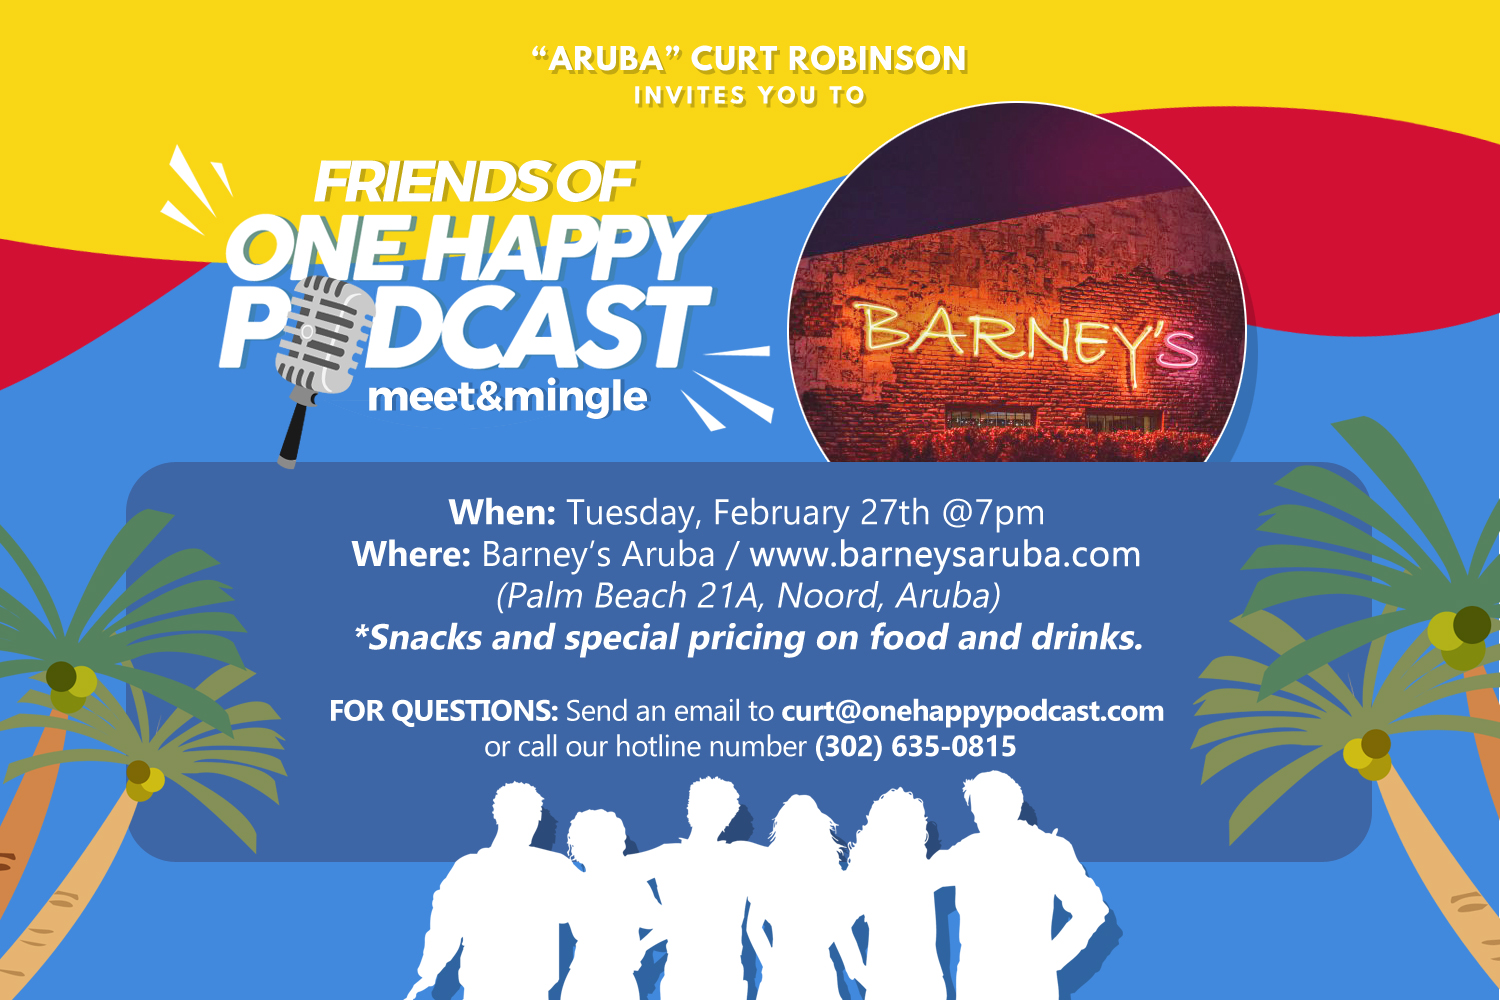 One Happy Podcast Meet and Mingle at Barney's Aruba